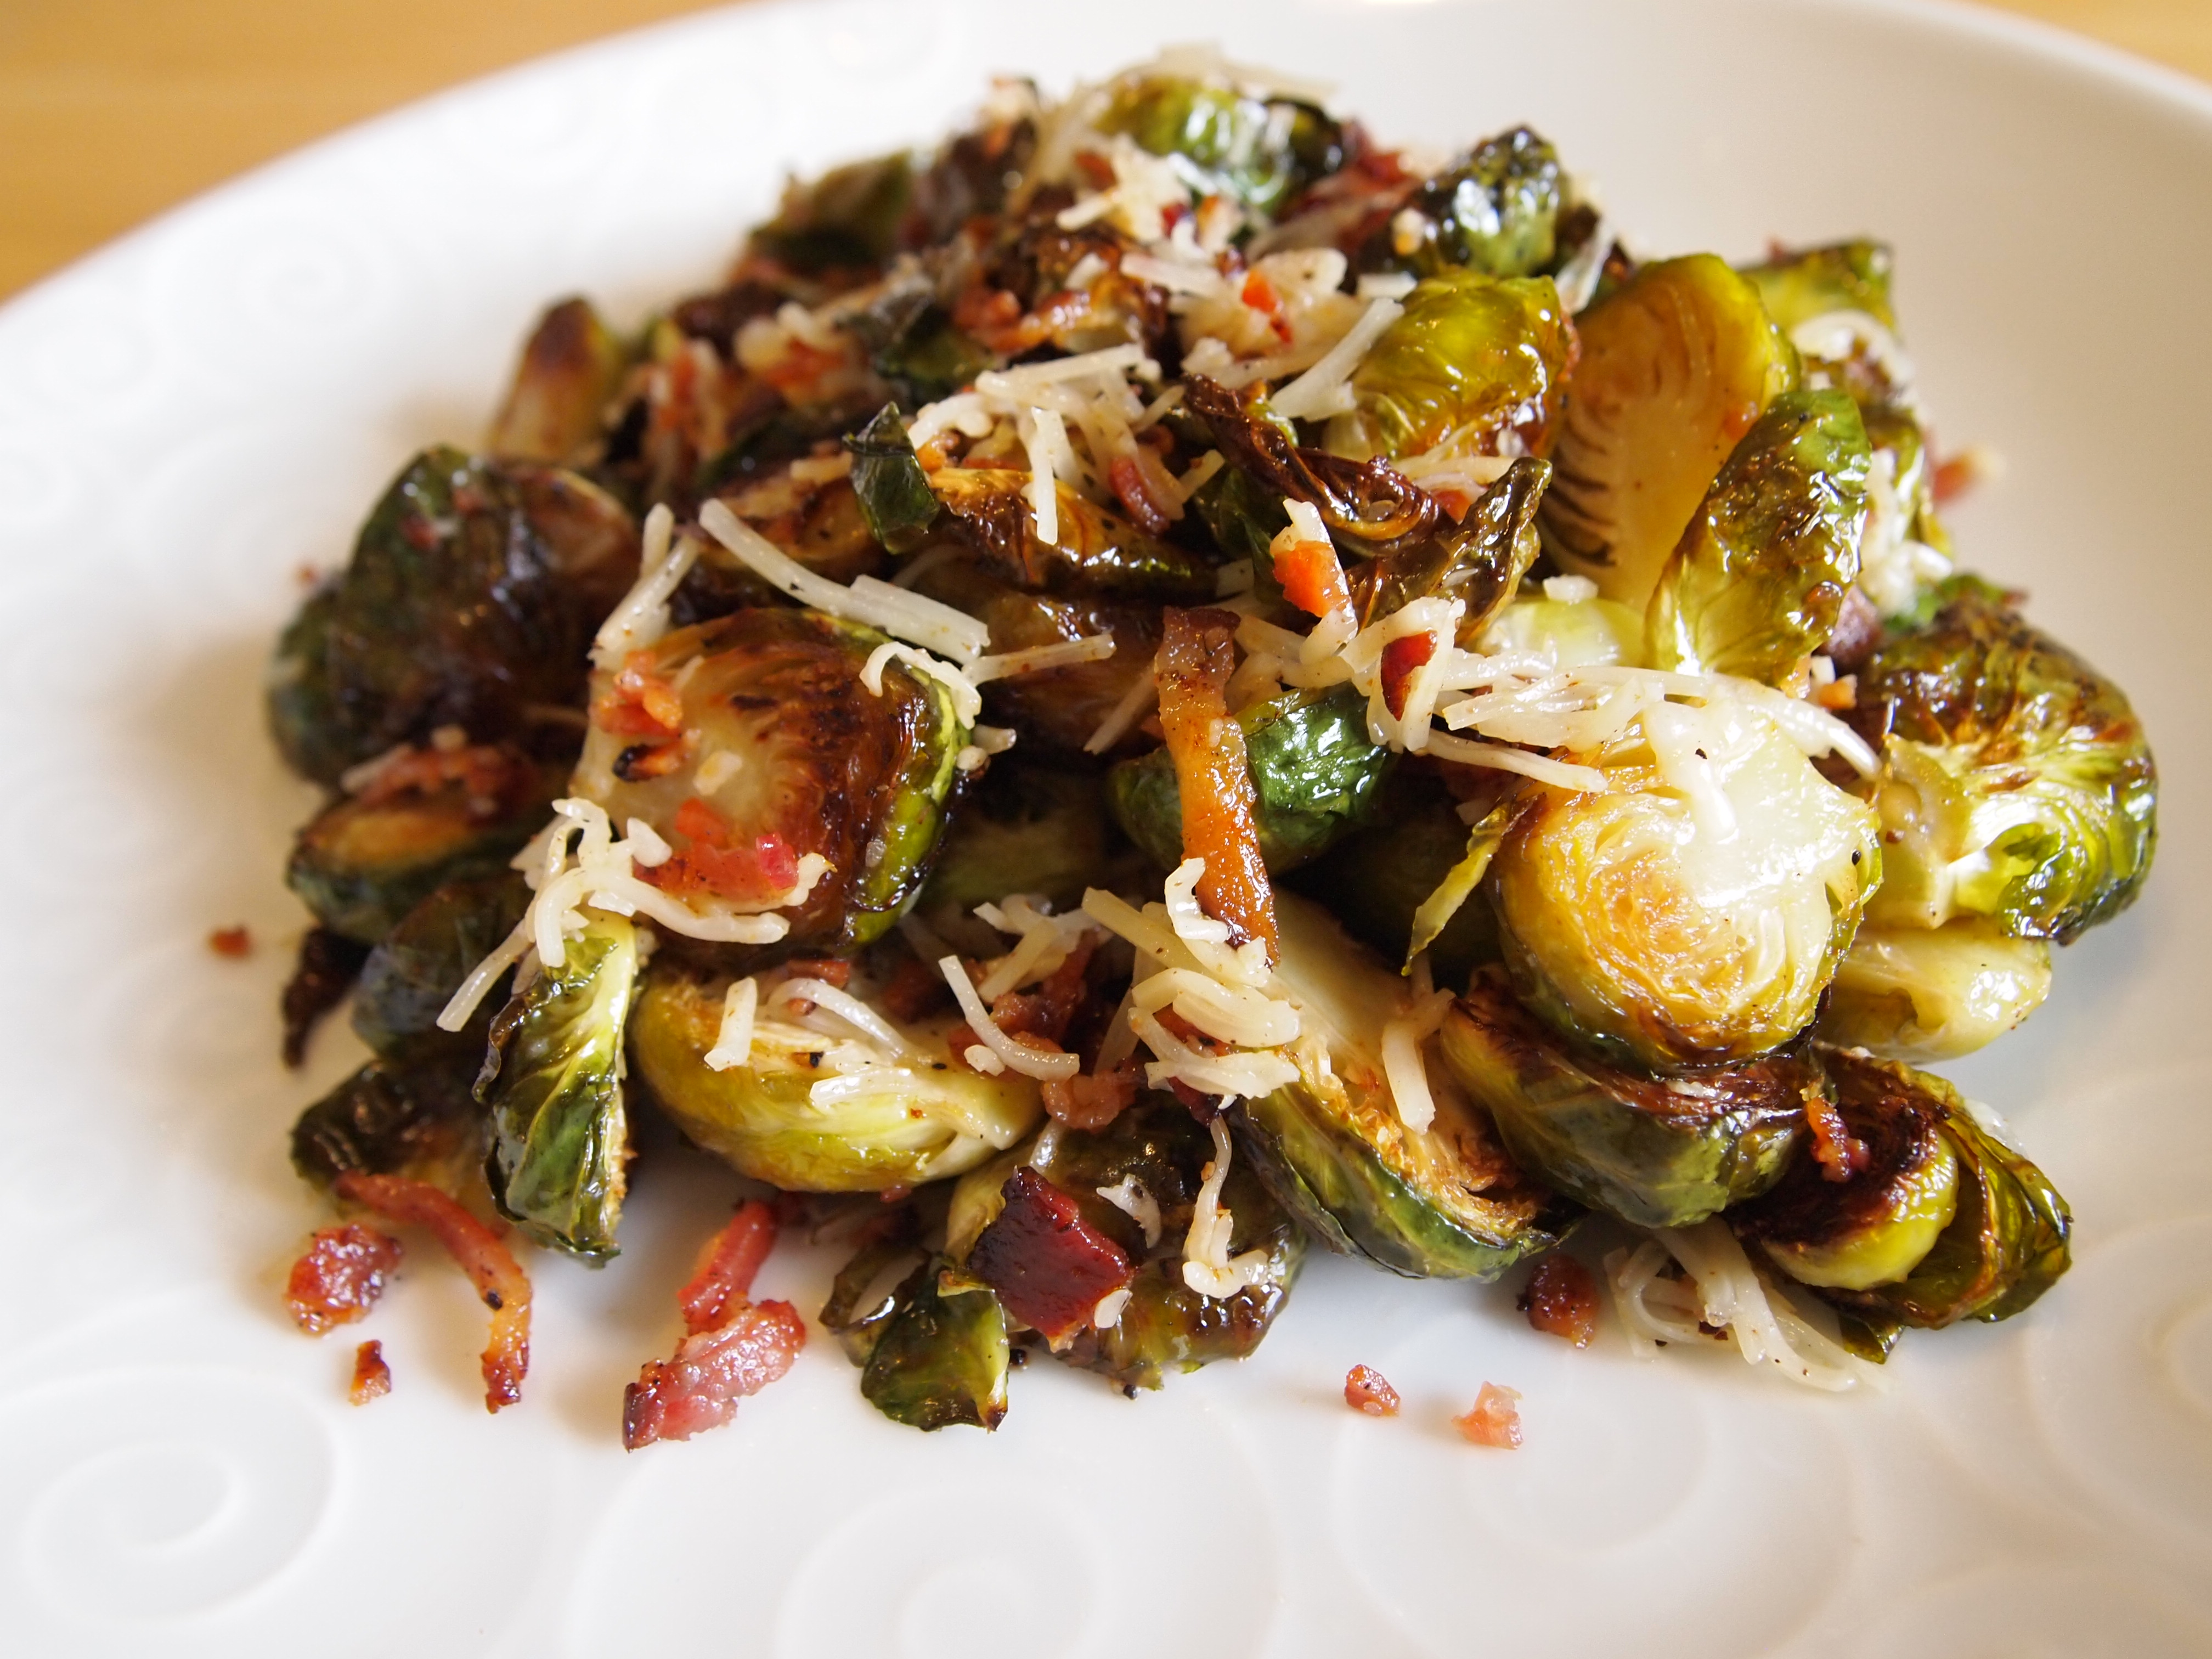 Garlic-Roasted Cheesy Brussels Sprouts